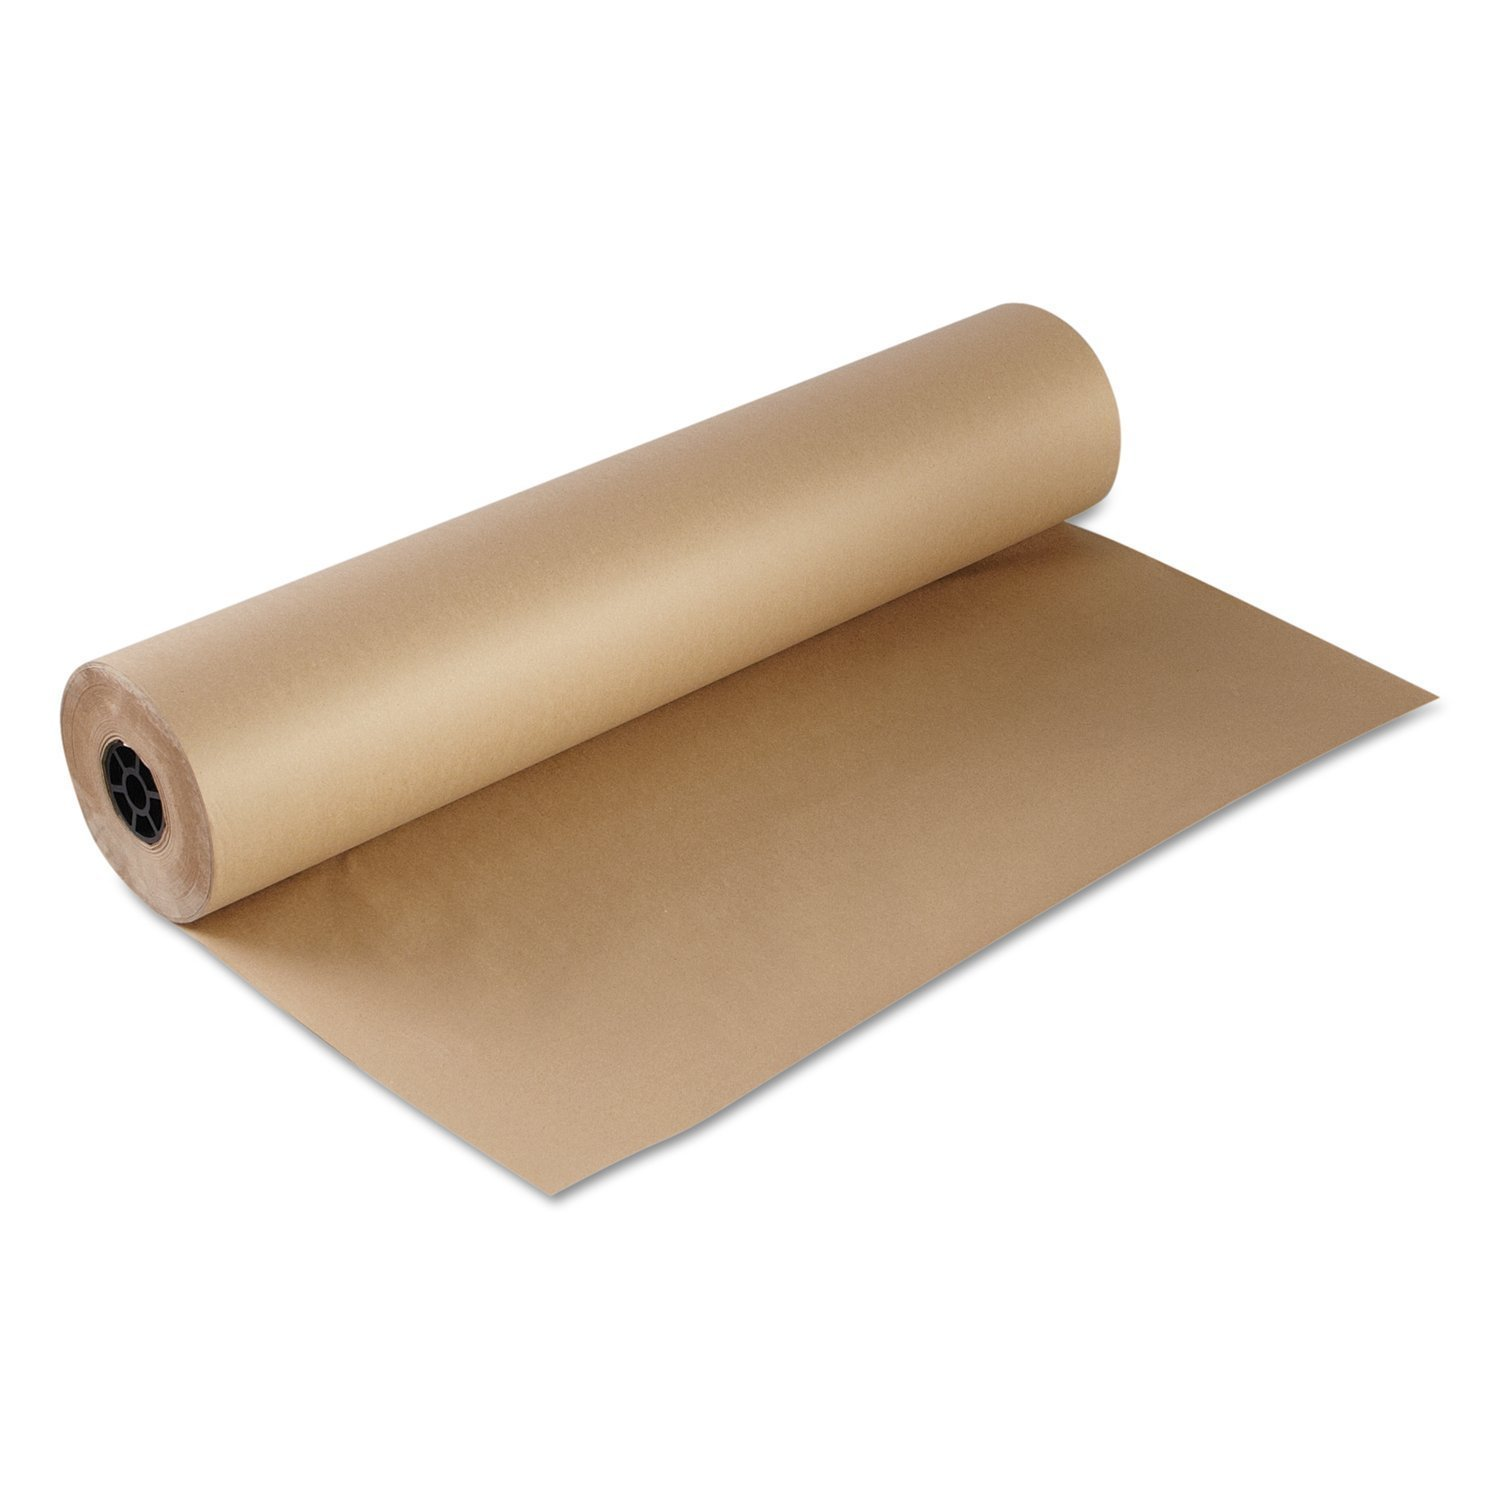 ValueMailers Kraft Paper Packaging Wrapping Paper, 36 in x 765 ft, Brown